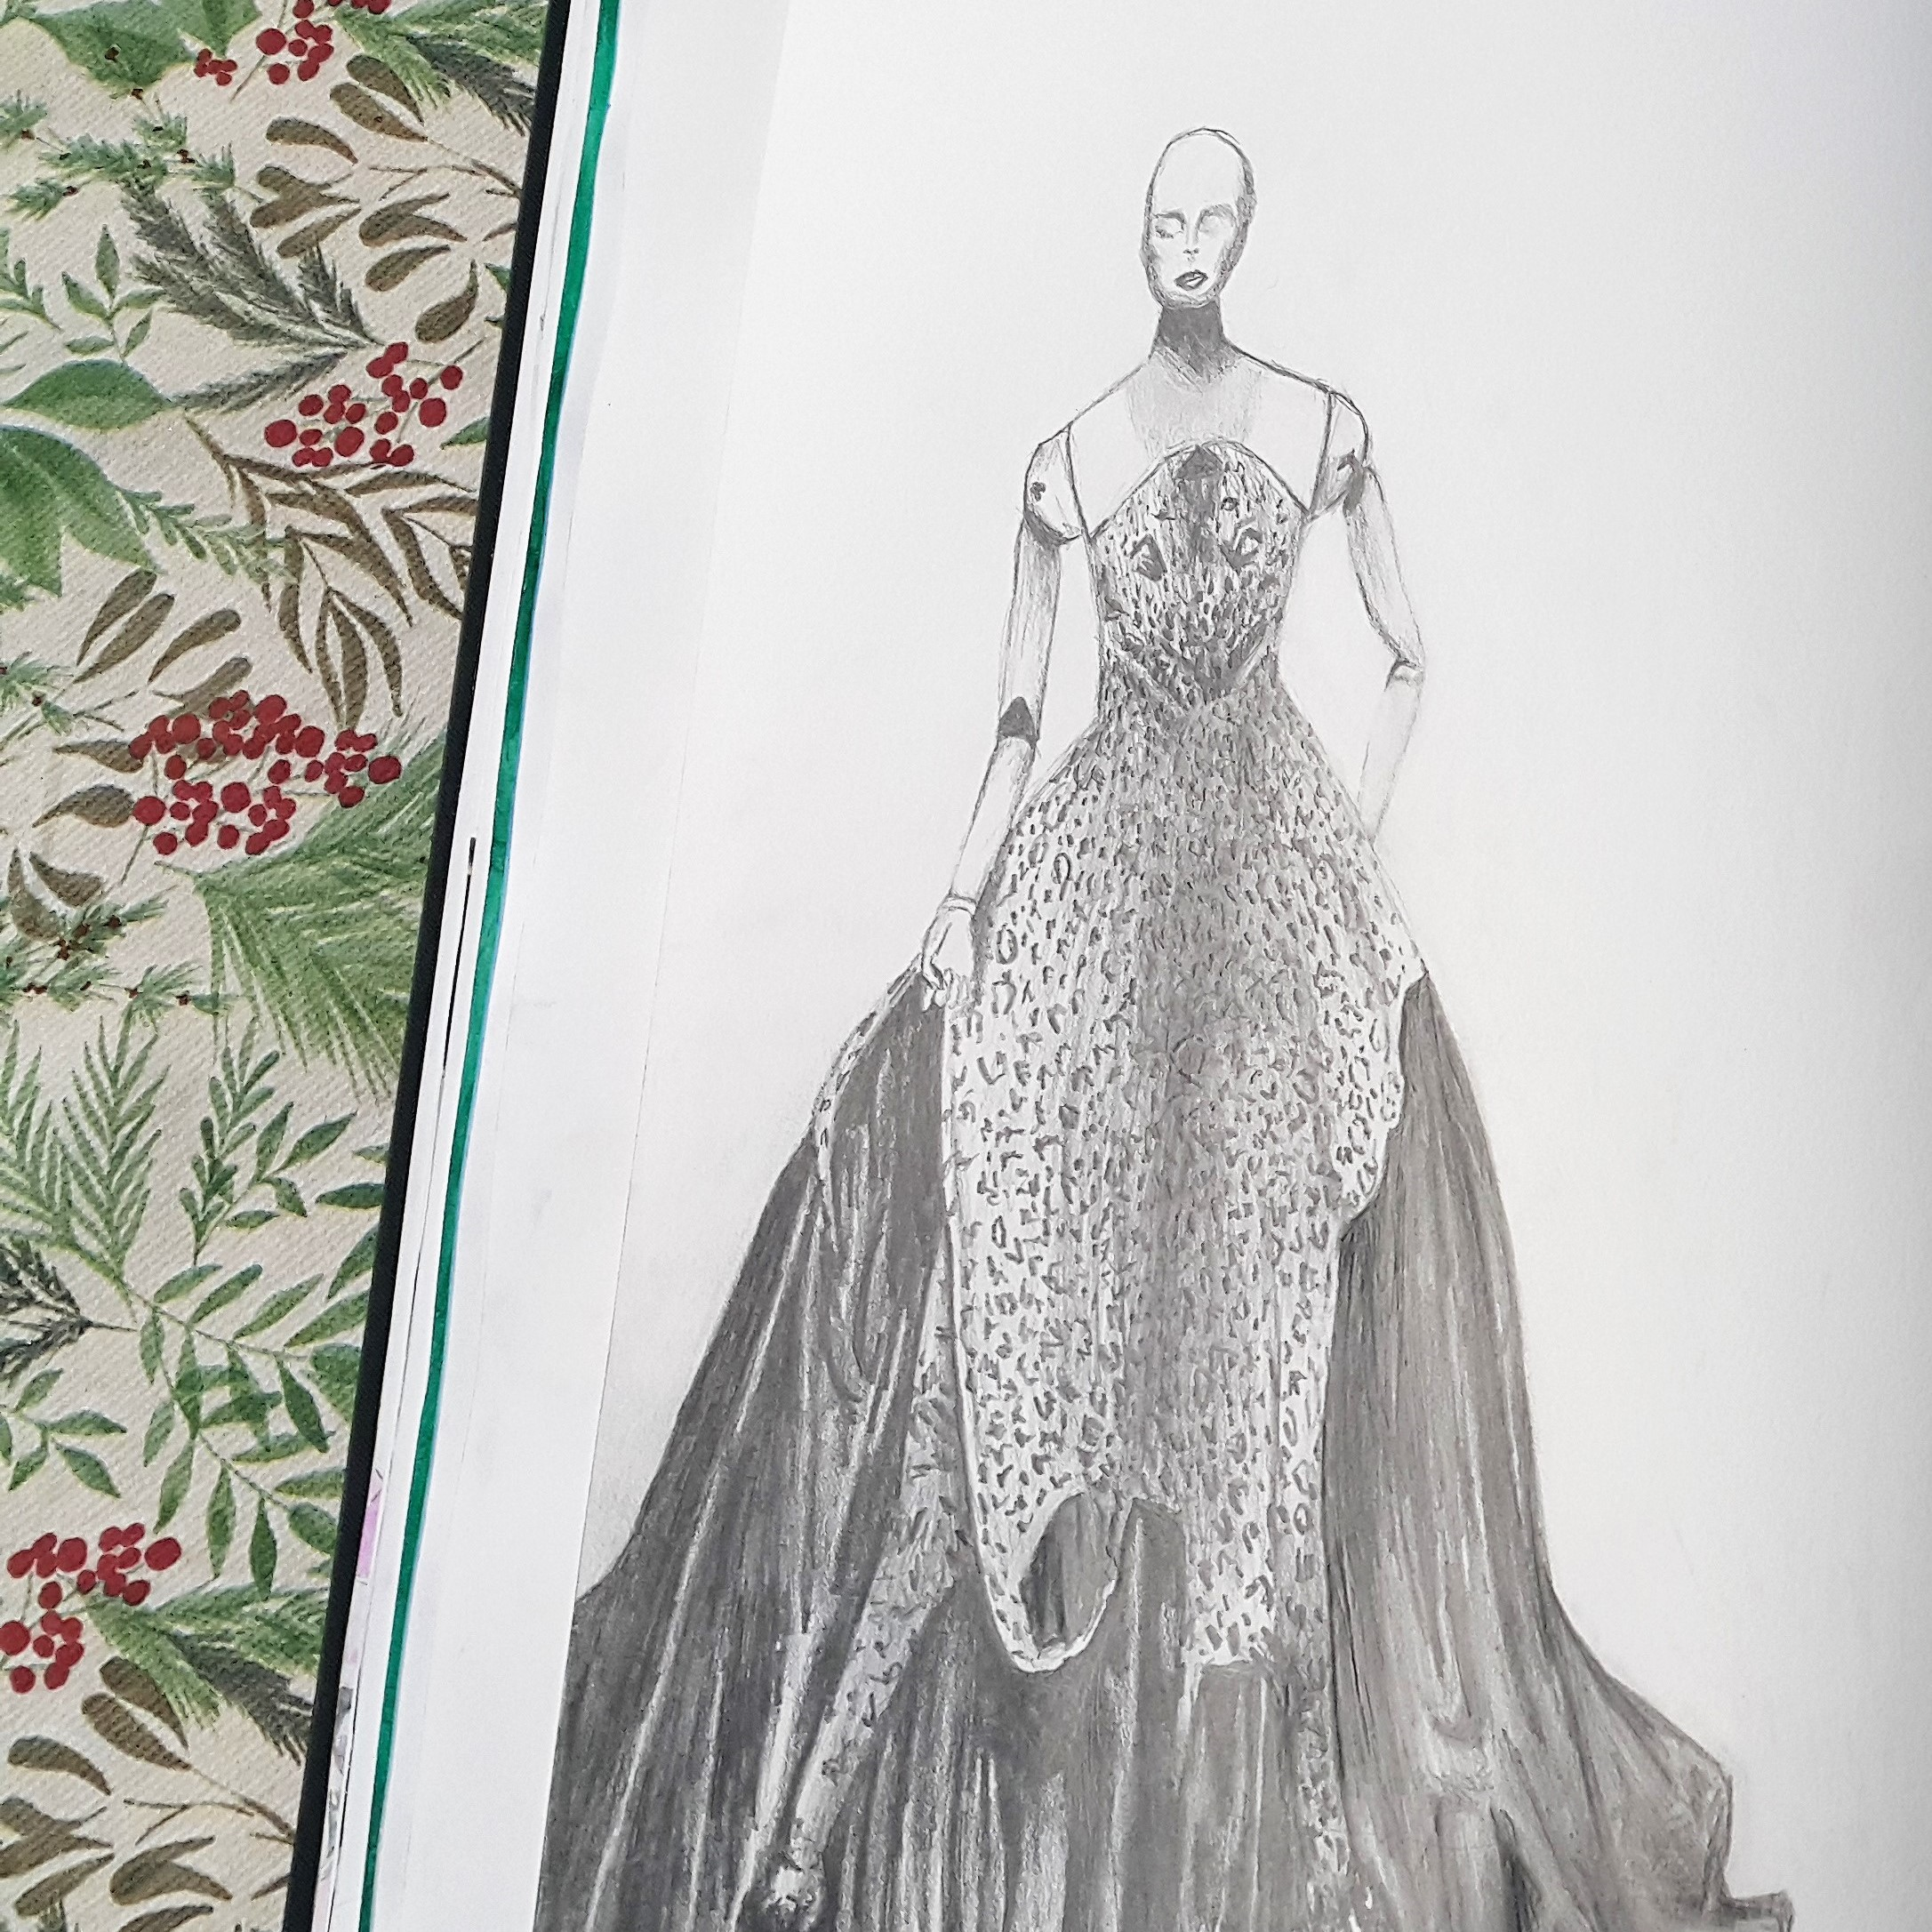 fashion-sketch-mcqueen-alexander-year10-private-lesson-tutor-irina-taneva